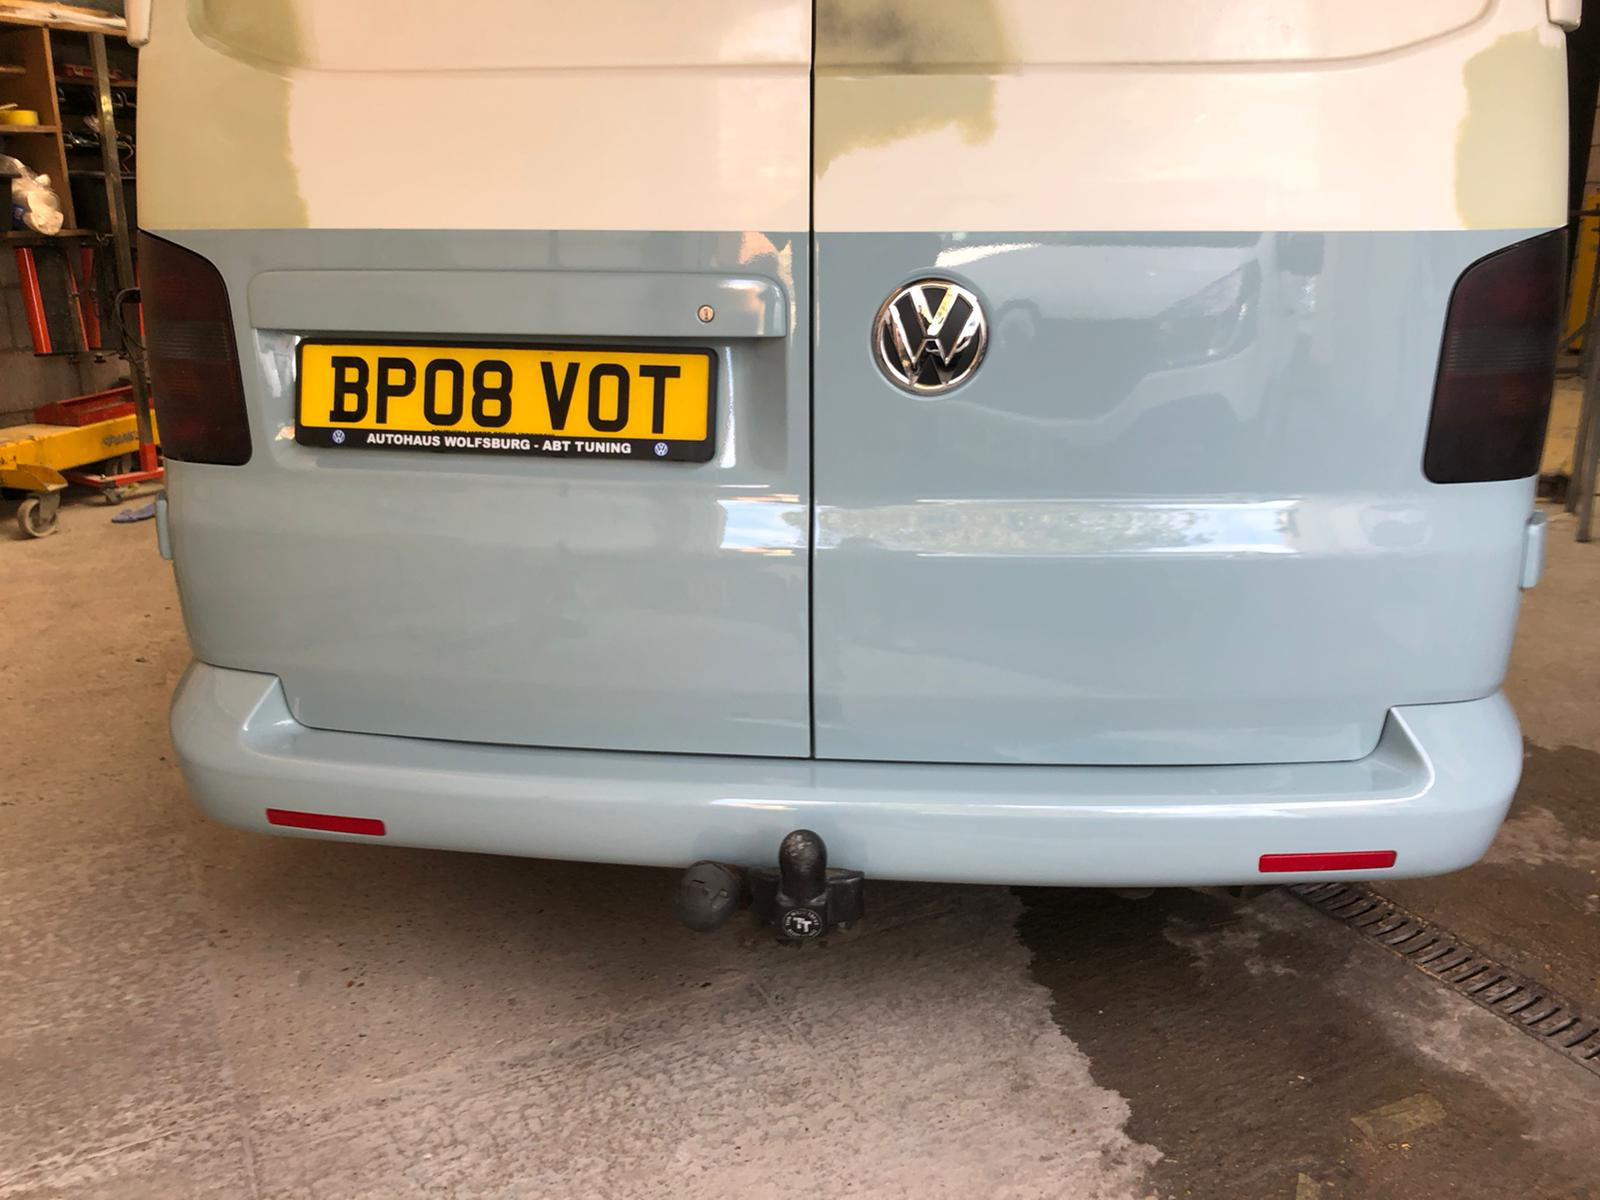 Respray of a VW Transporter using Two To